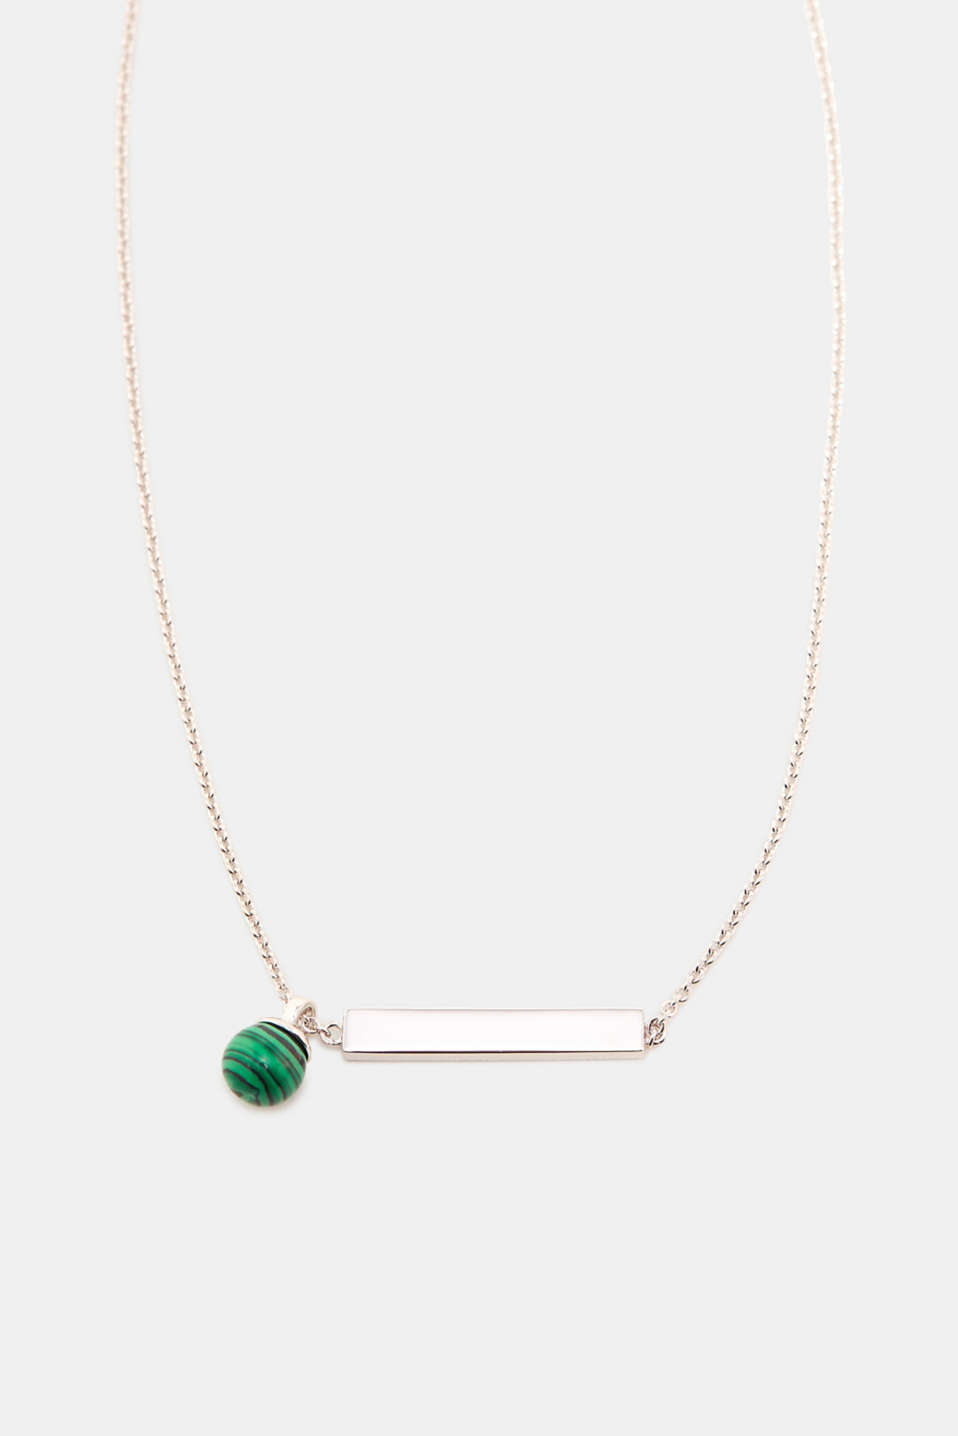 Esprit - Sterling silver necklace with a green bead